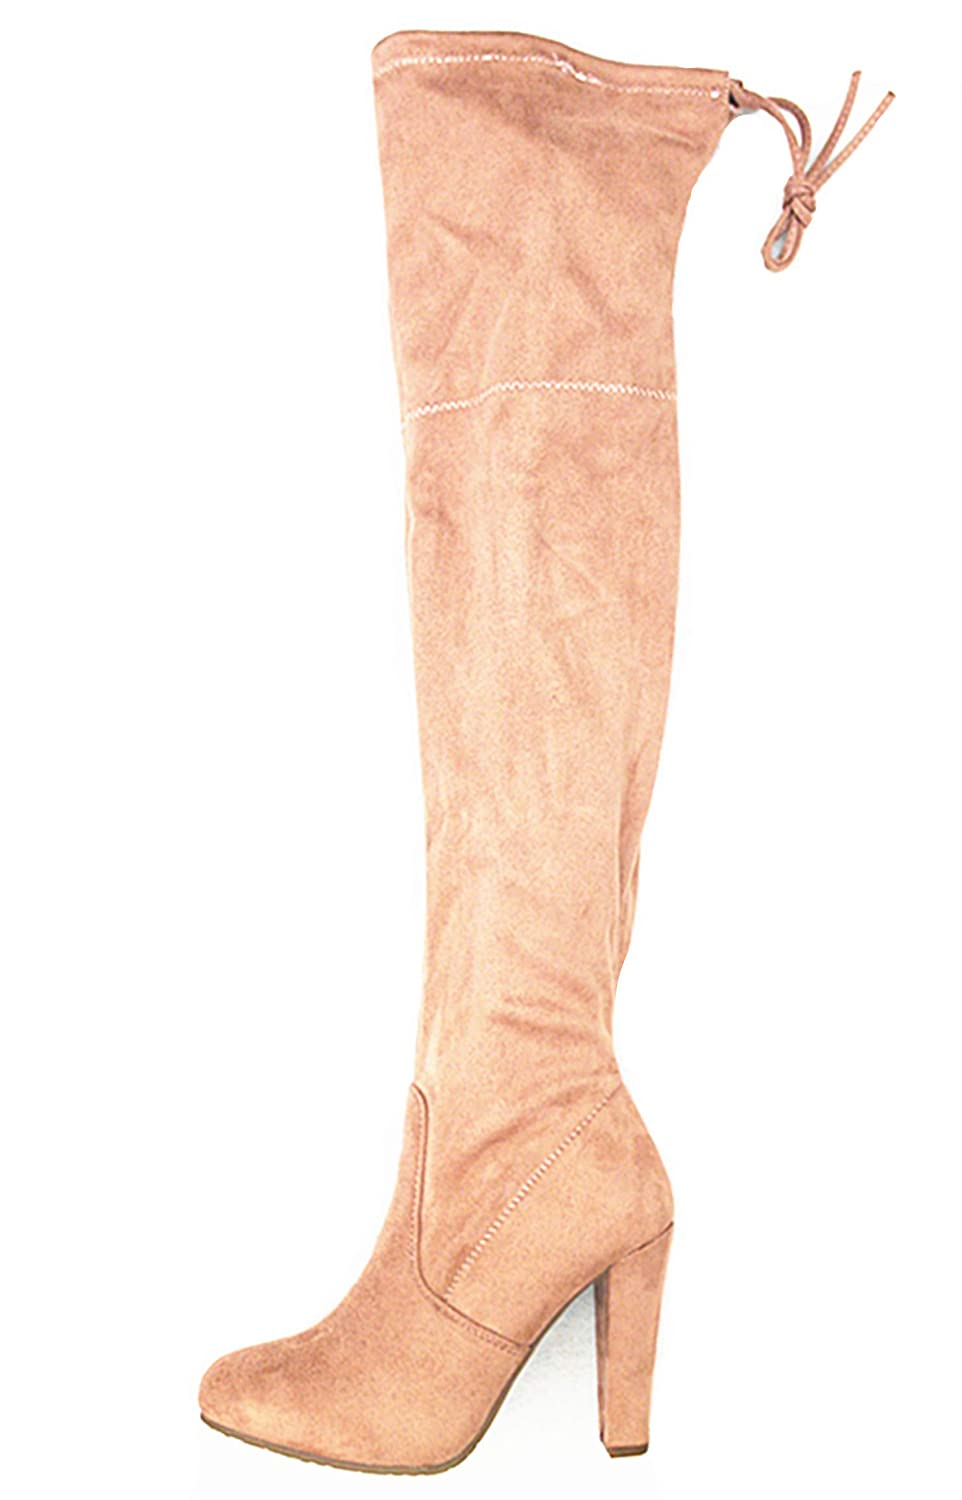 Dusty Pink-h1 S&F SF Women's Over The Knee Boots Chunky Heels String Riding Women's shoes